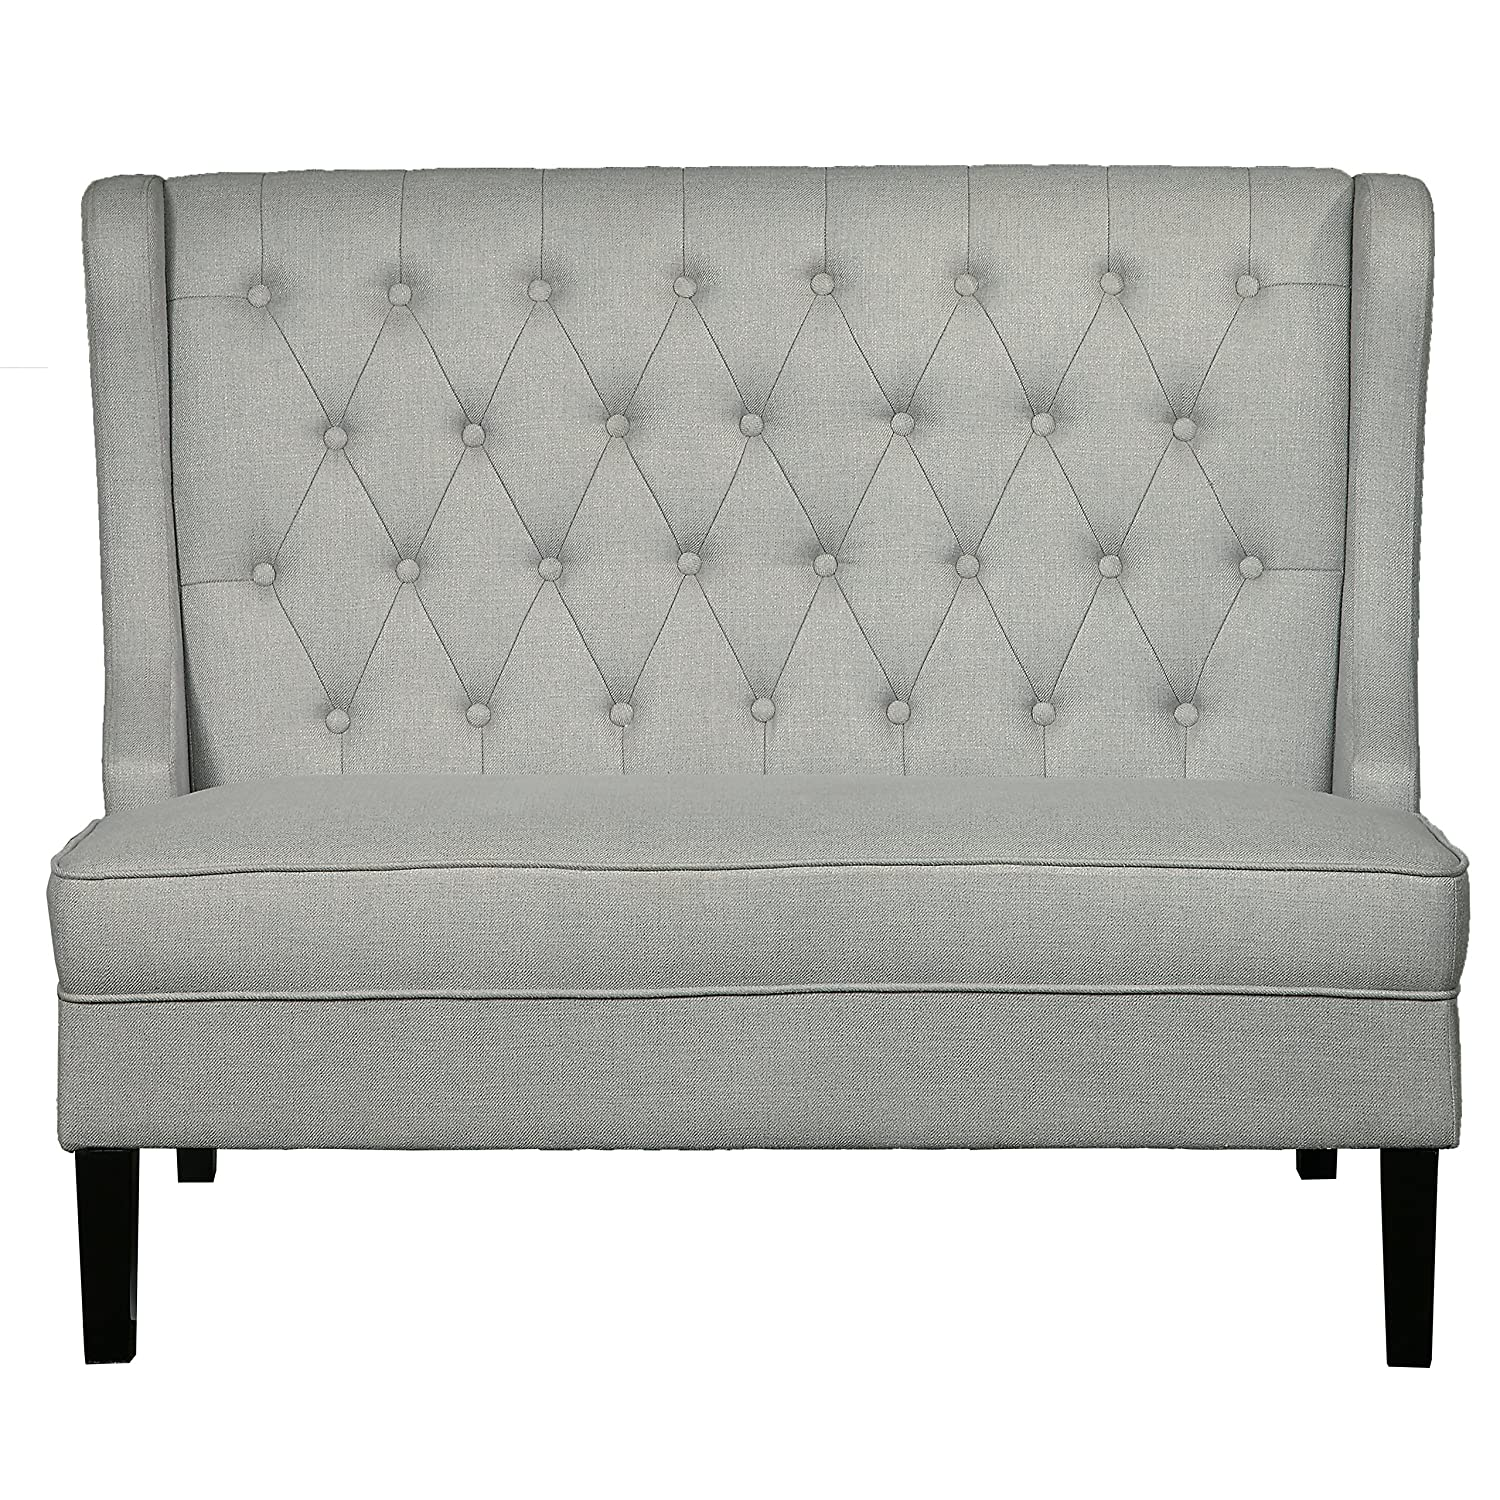 Amazon Pulaski Accentrics Home Wing Back Upholstered Settee in